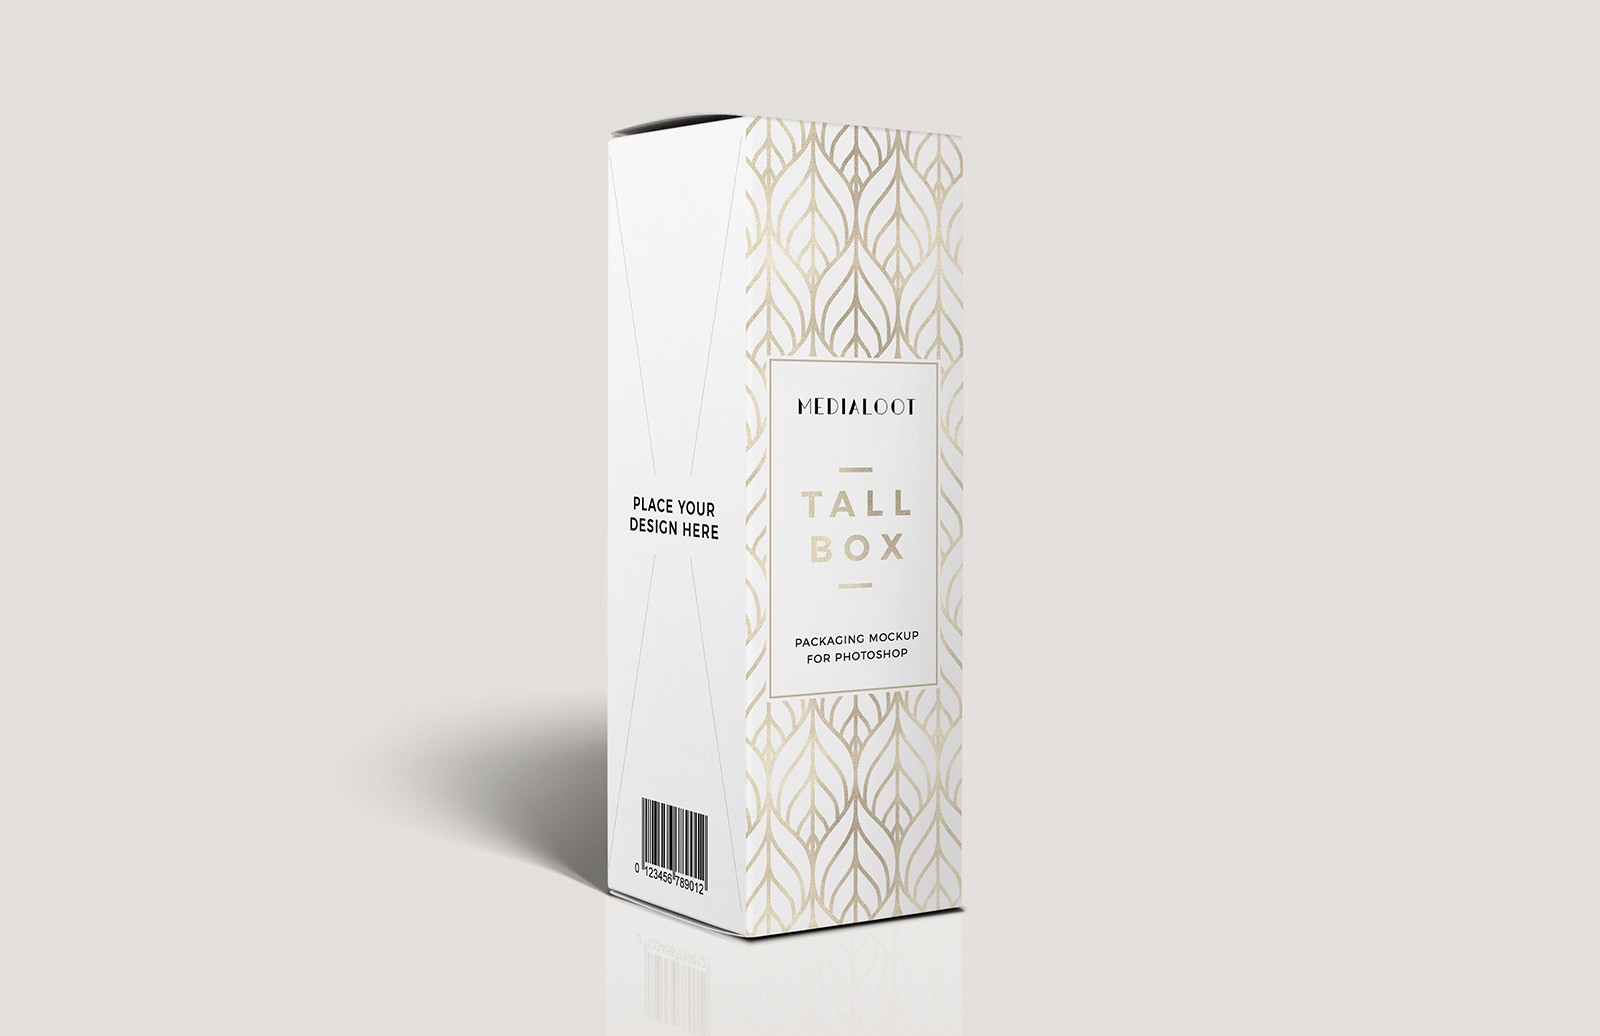 Tall Box Packaging Mockup For Photoshop Medialoot